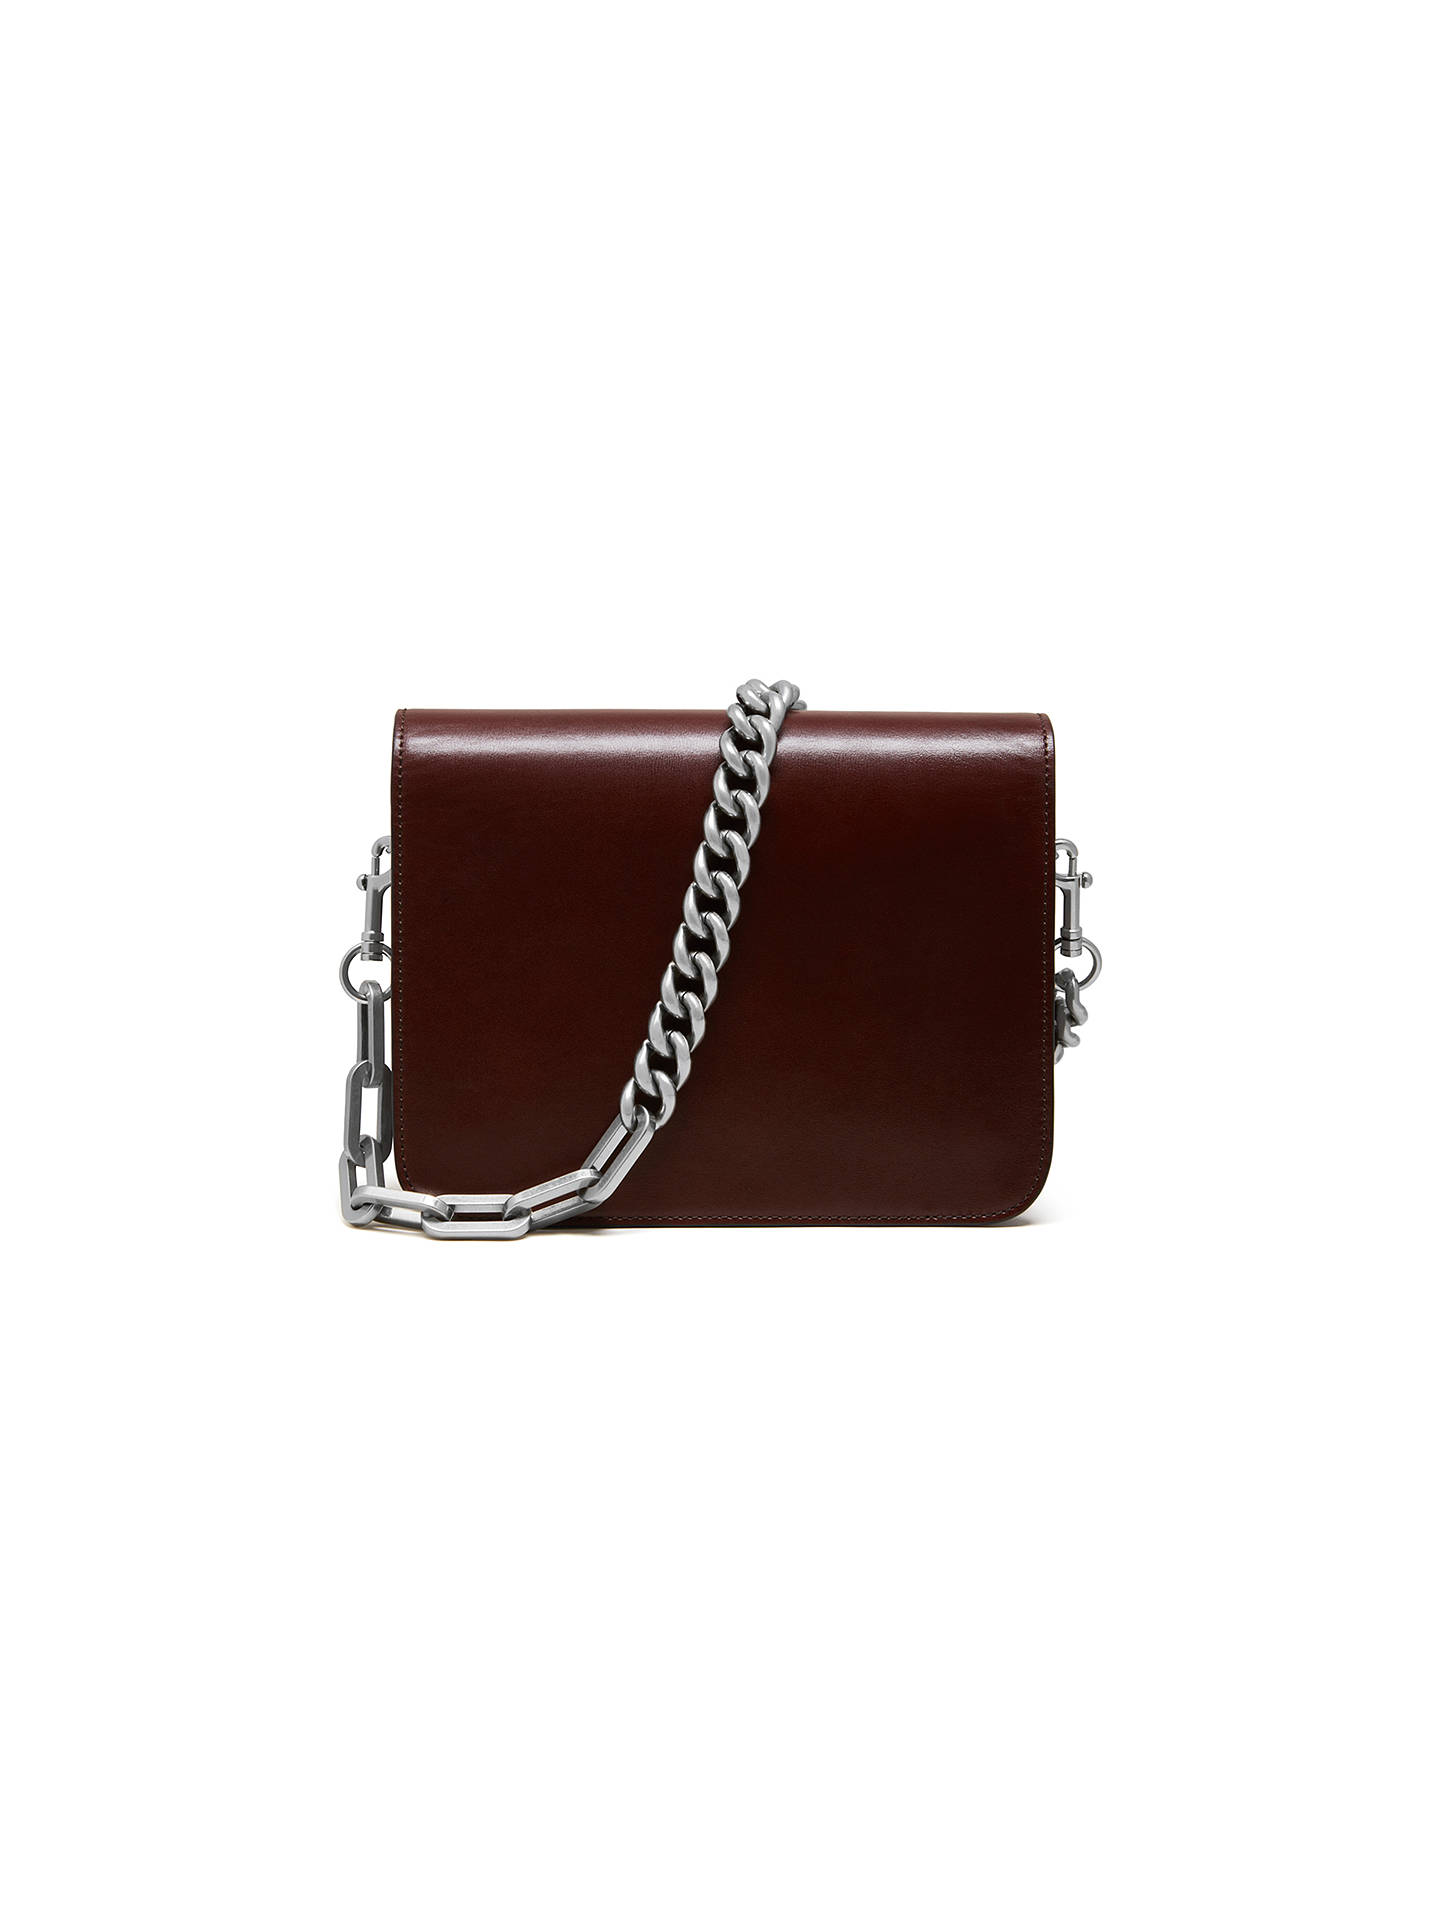 ... BuyMulberry Clifton Crossboarded Calf Leather Across Body Bag df12968c4e93f